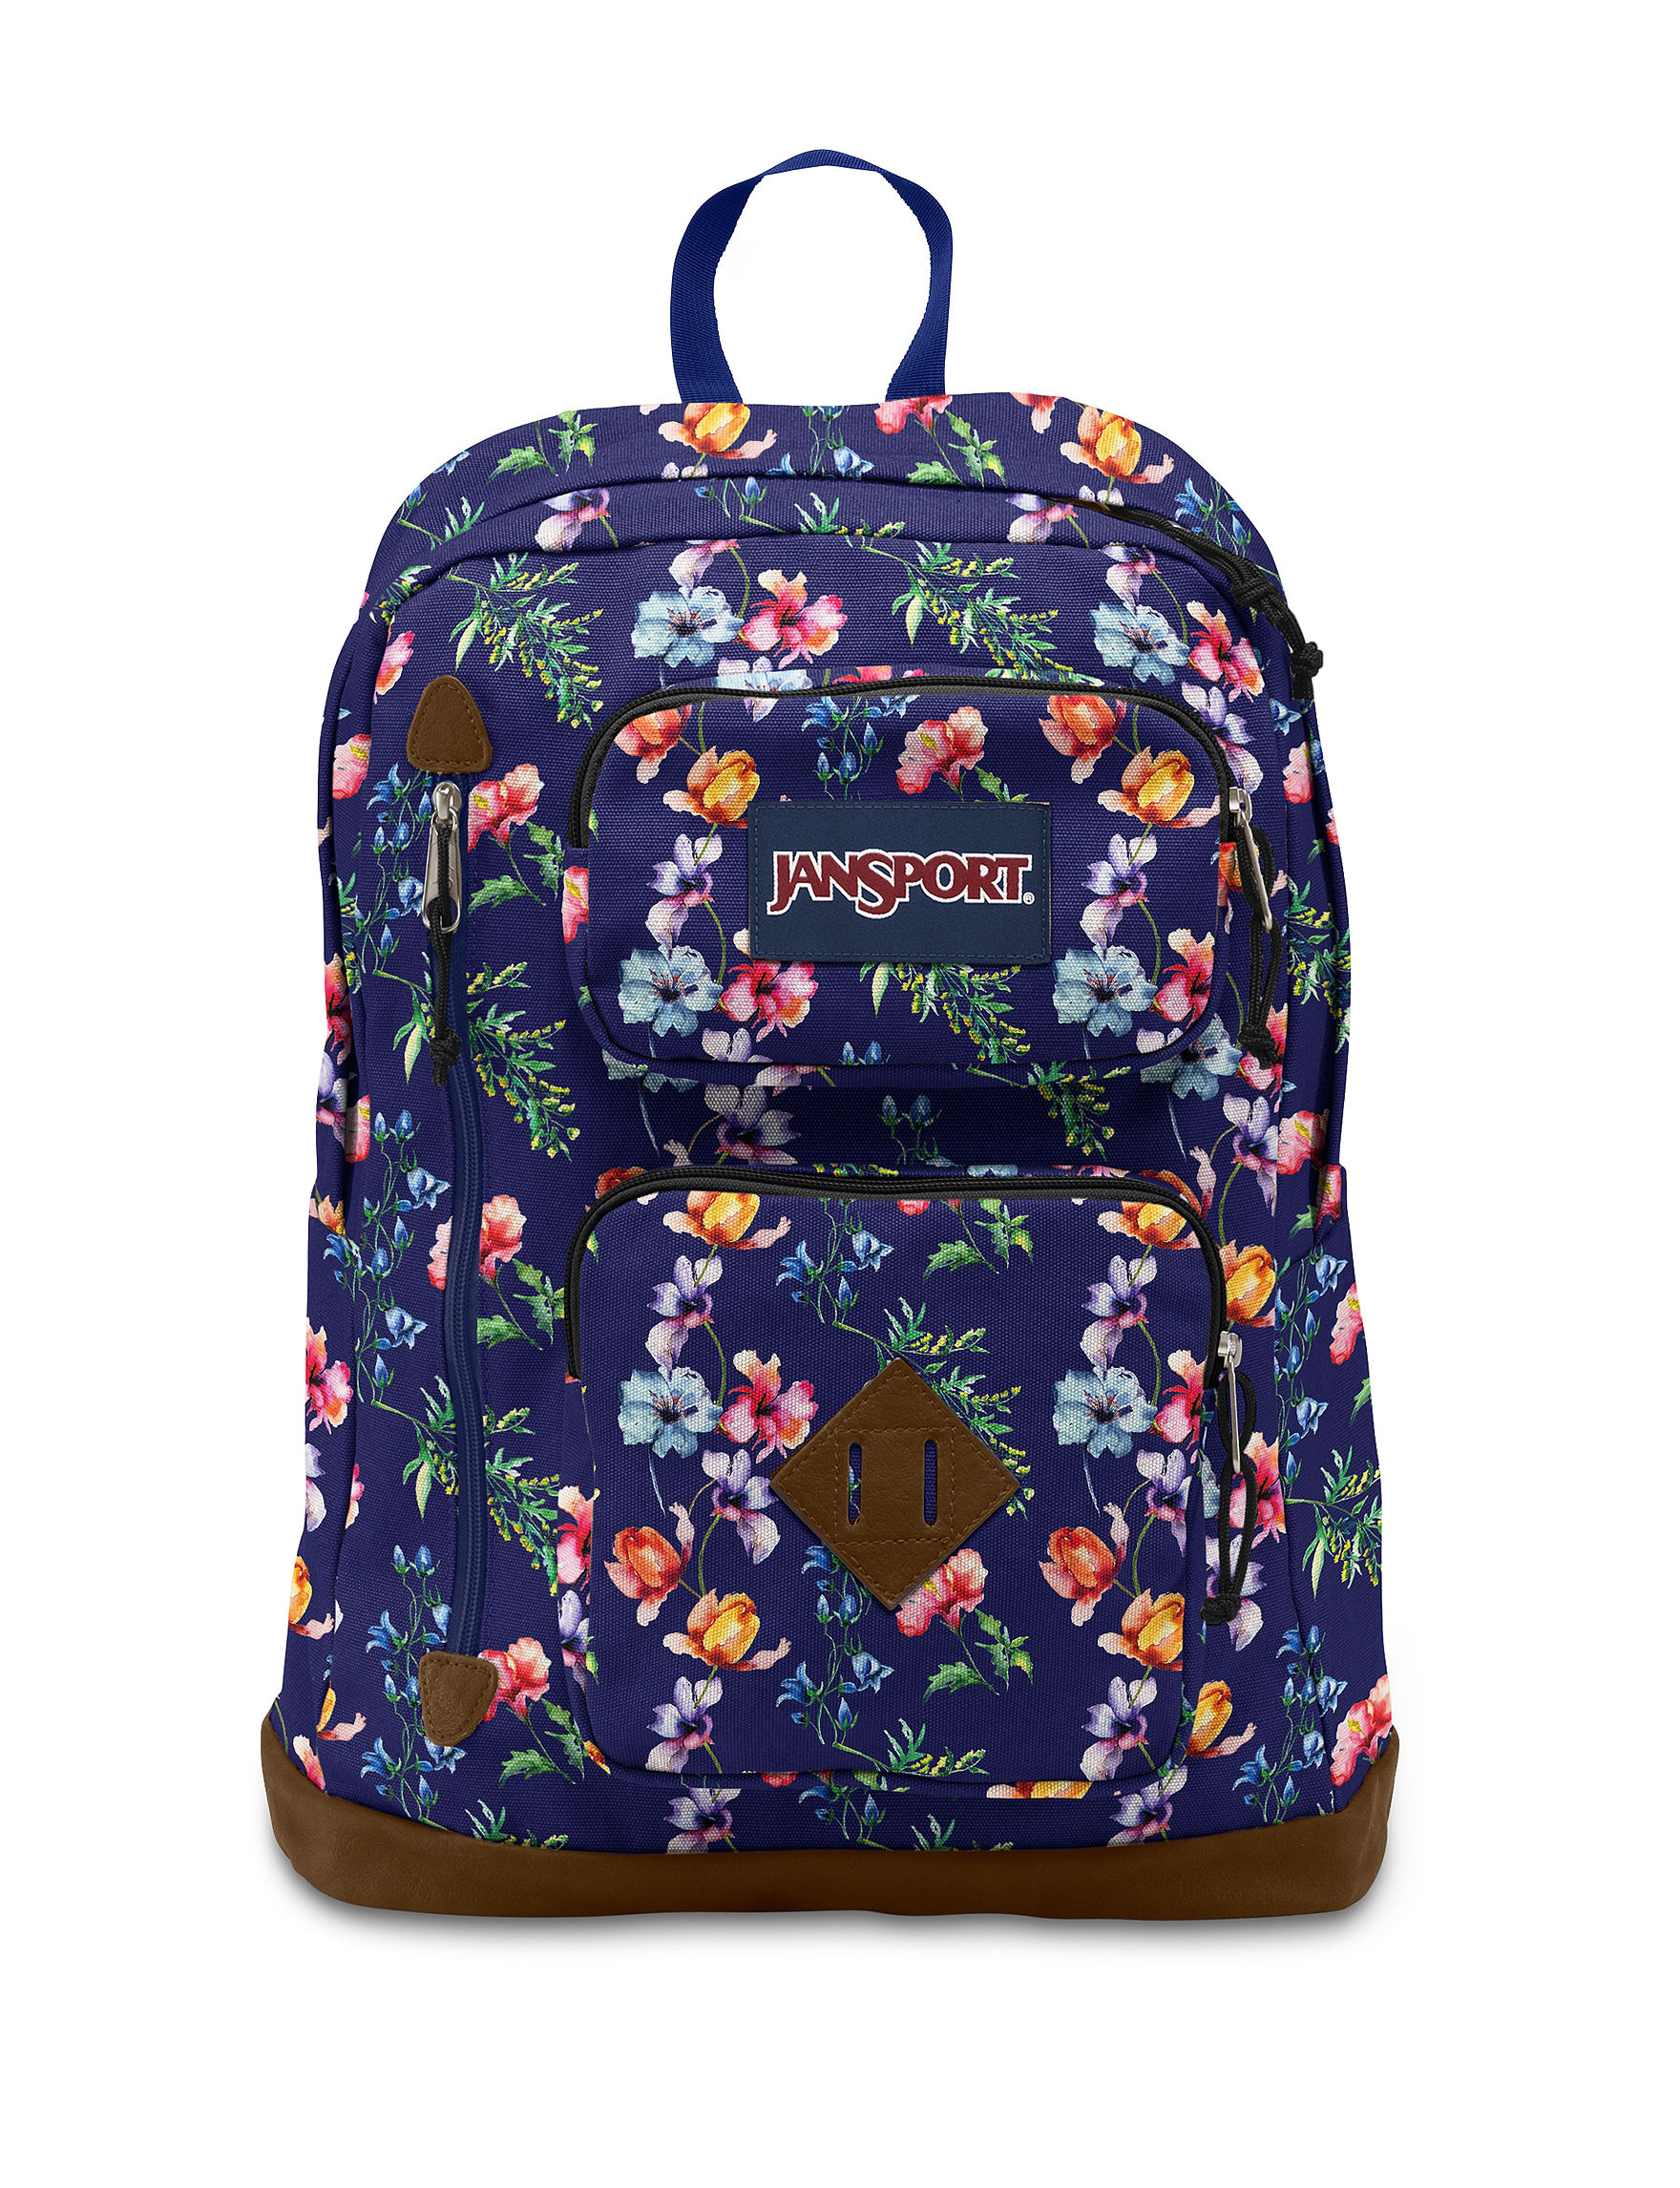 Jansport Navy Bookbags & Backpacks